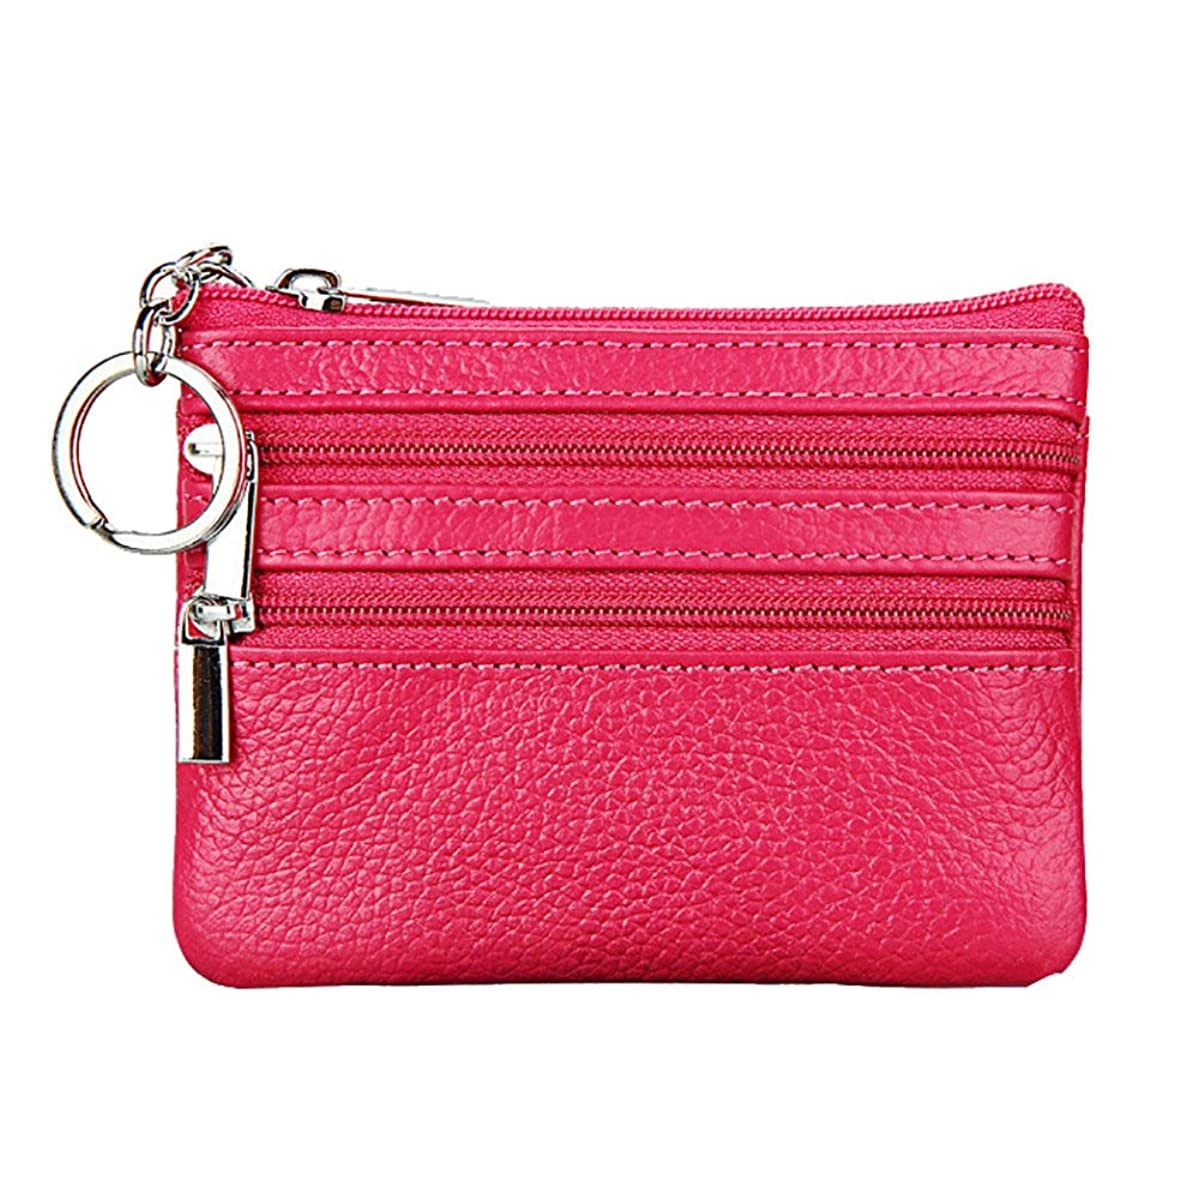 Koolsants Women's Wallets Key Leather Card Case Wallet Coin Change Purse Mini Zipper Coin